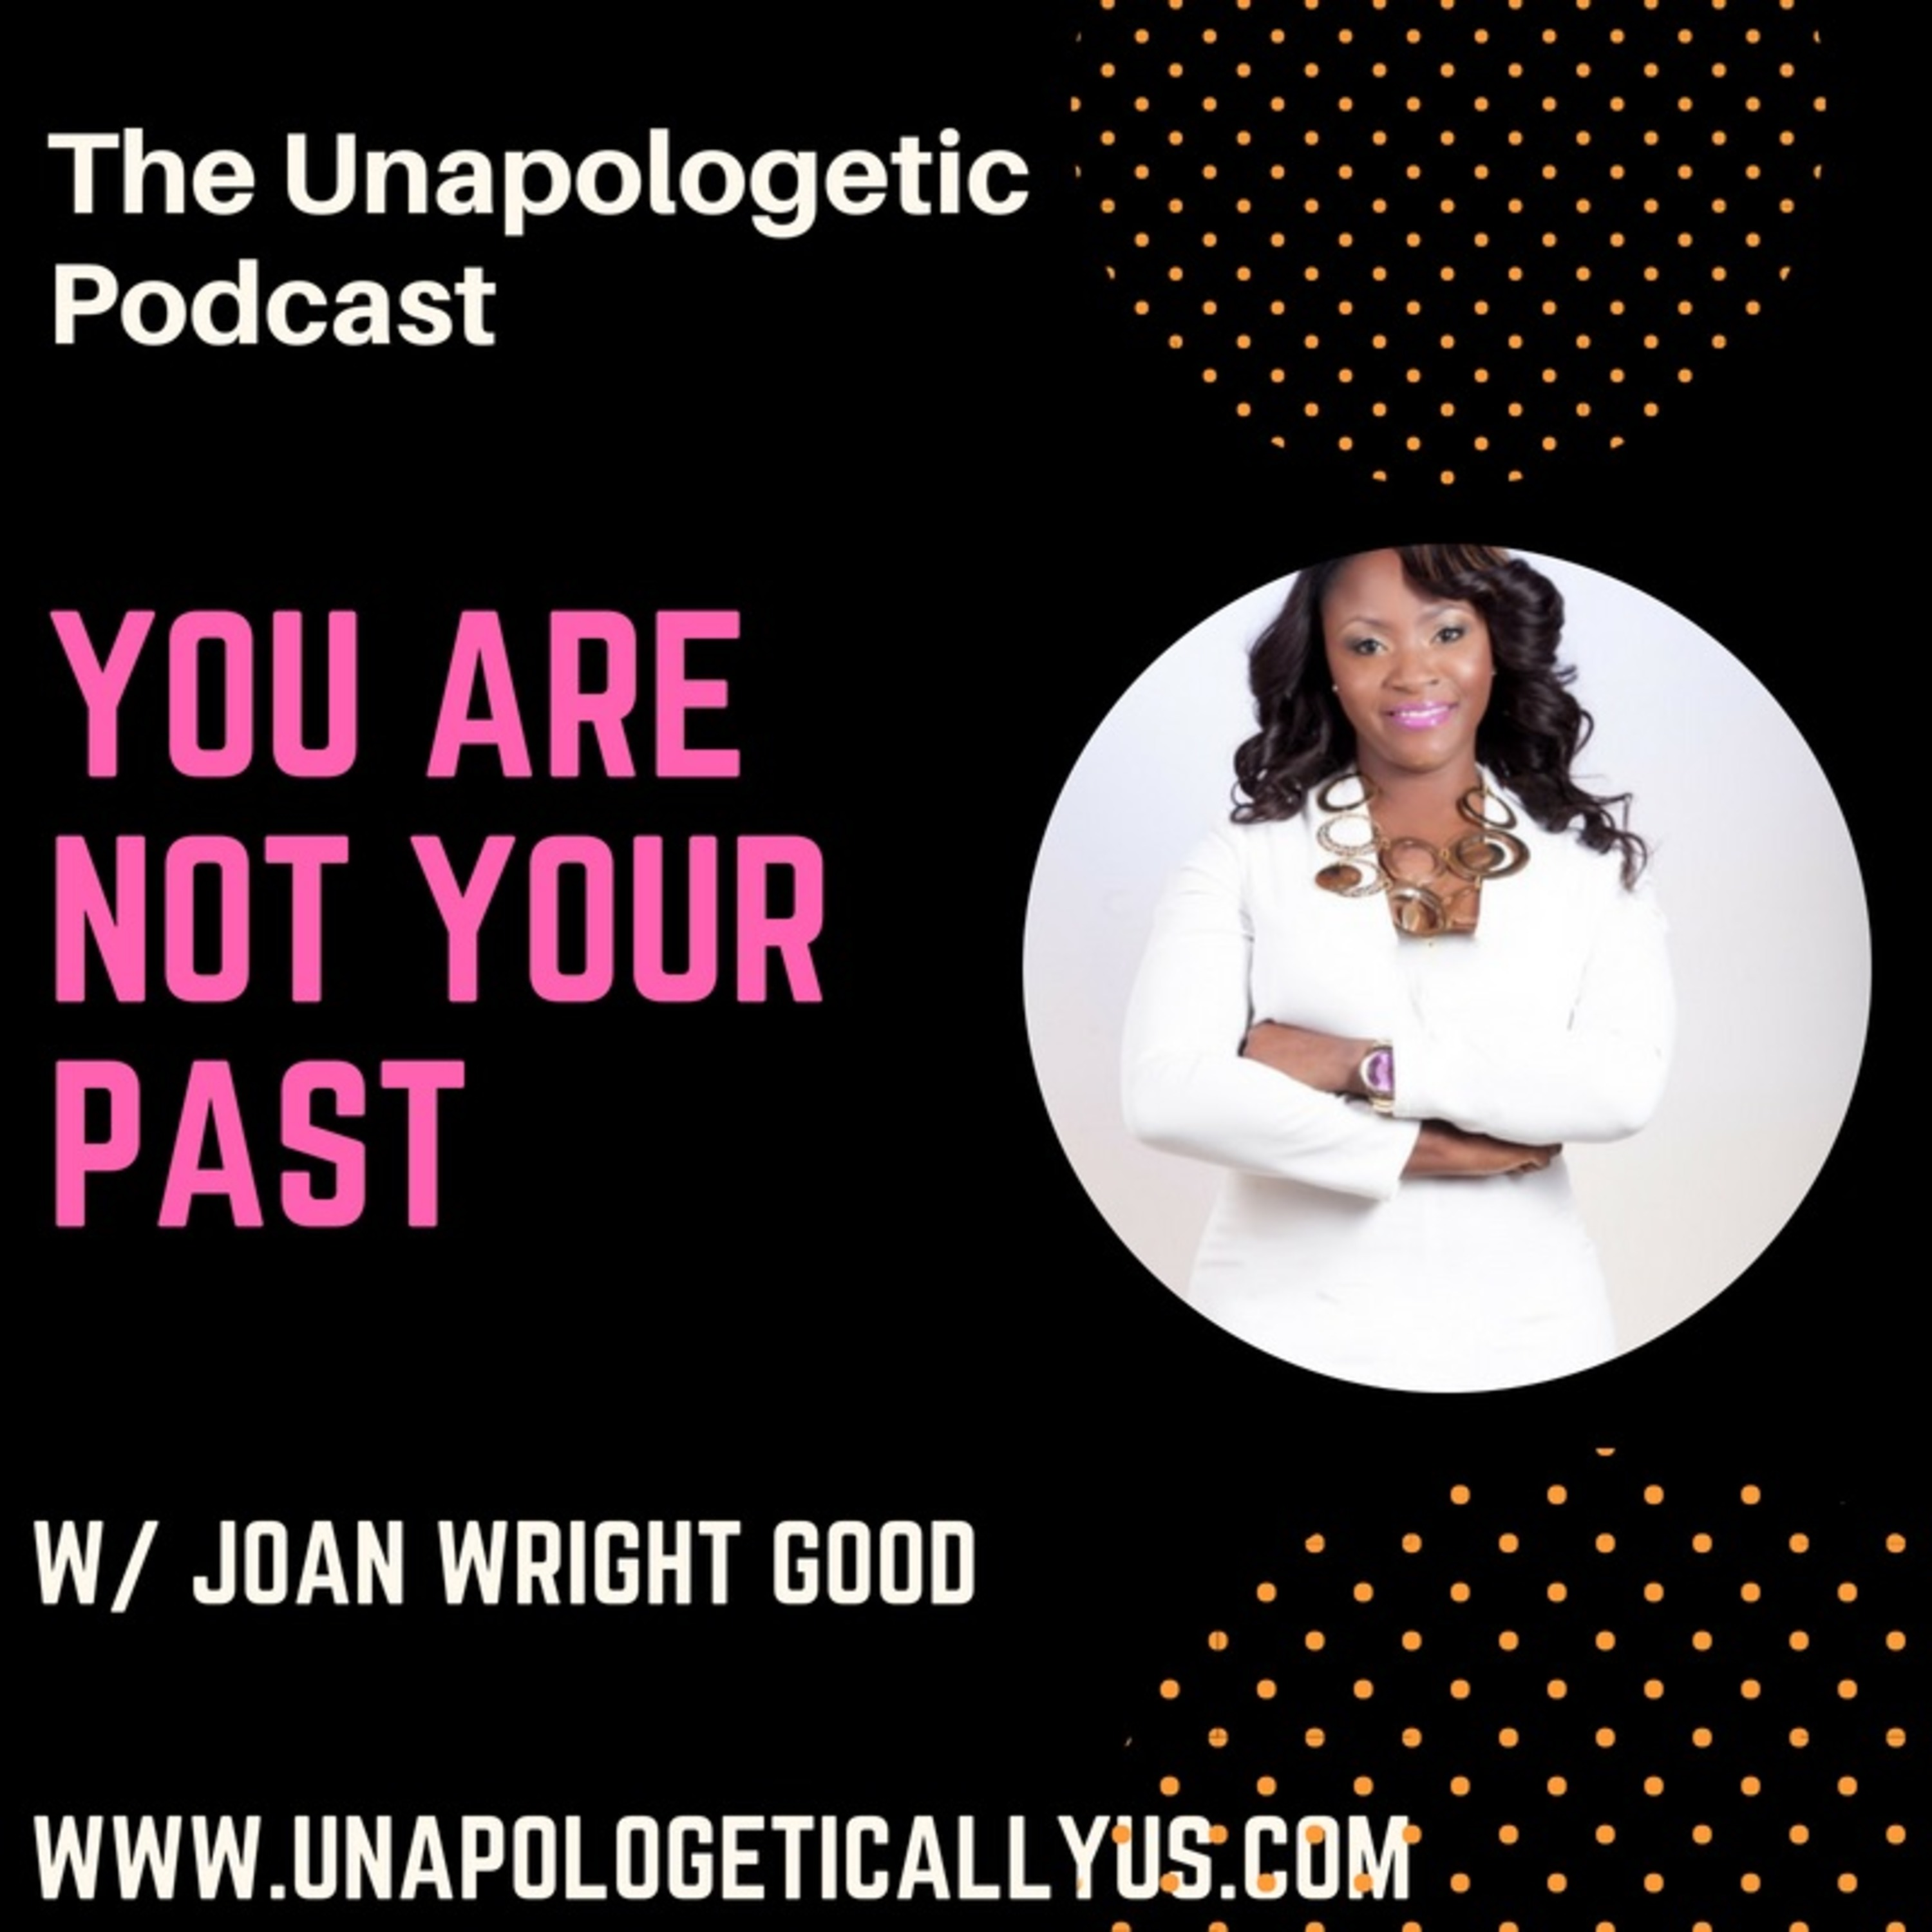 Episode 43: You Are Not Your Past w/ Minister Joan Wright Good